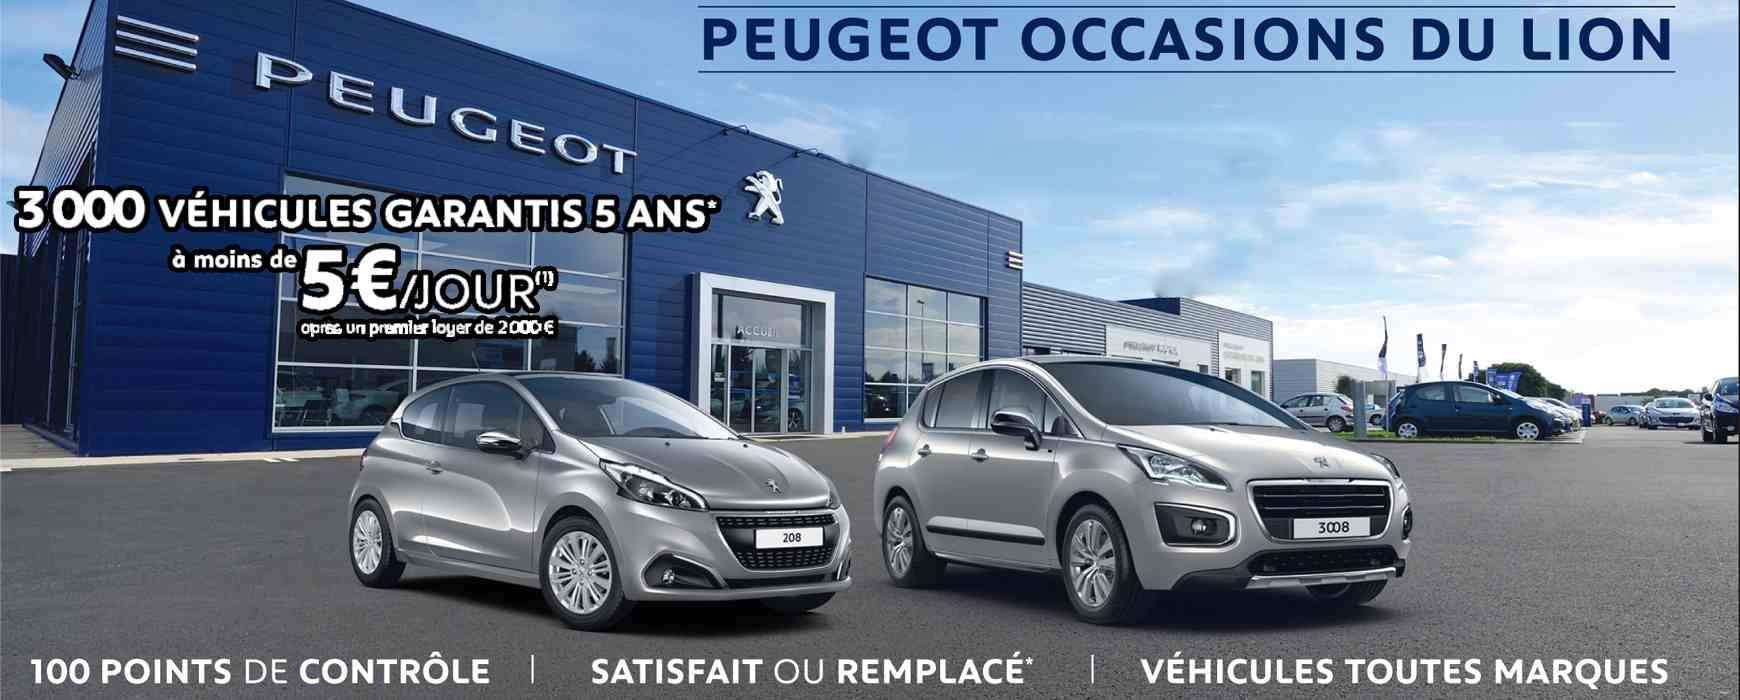 peugeot avignon concessionnaire garage vaucluse 84. Black Bedroom Furniture Sets. Home Design Ideas